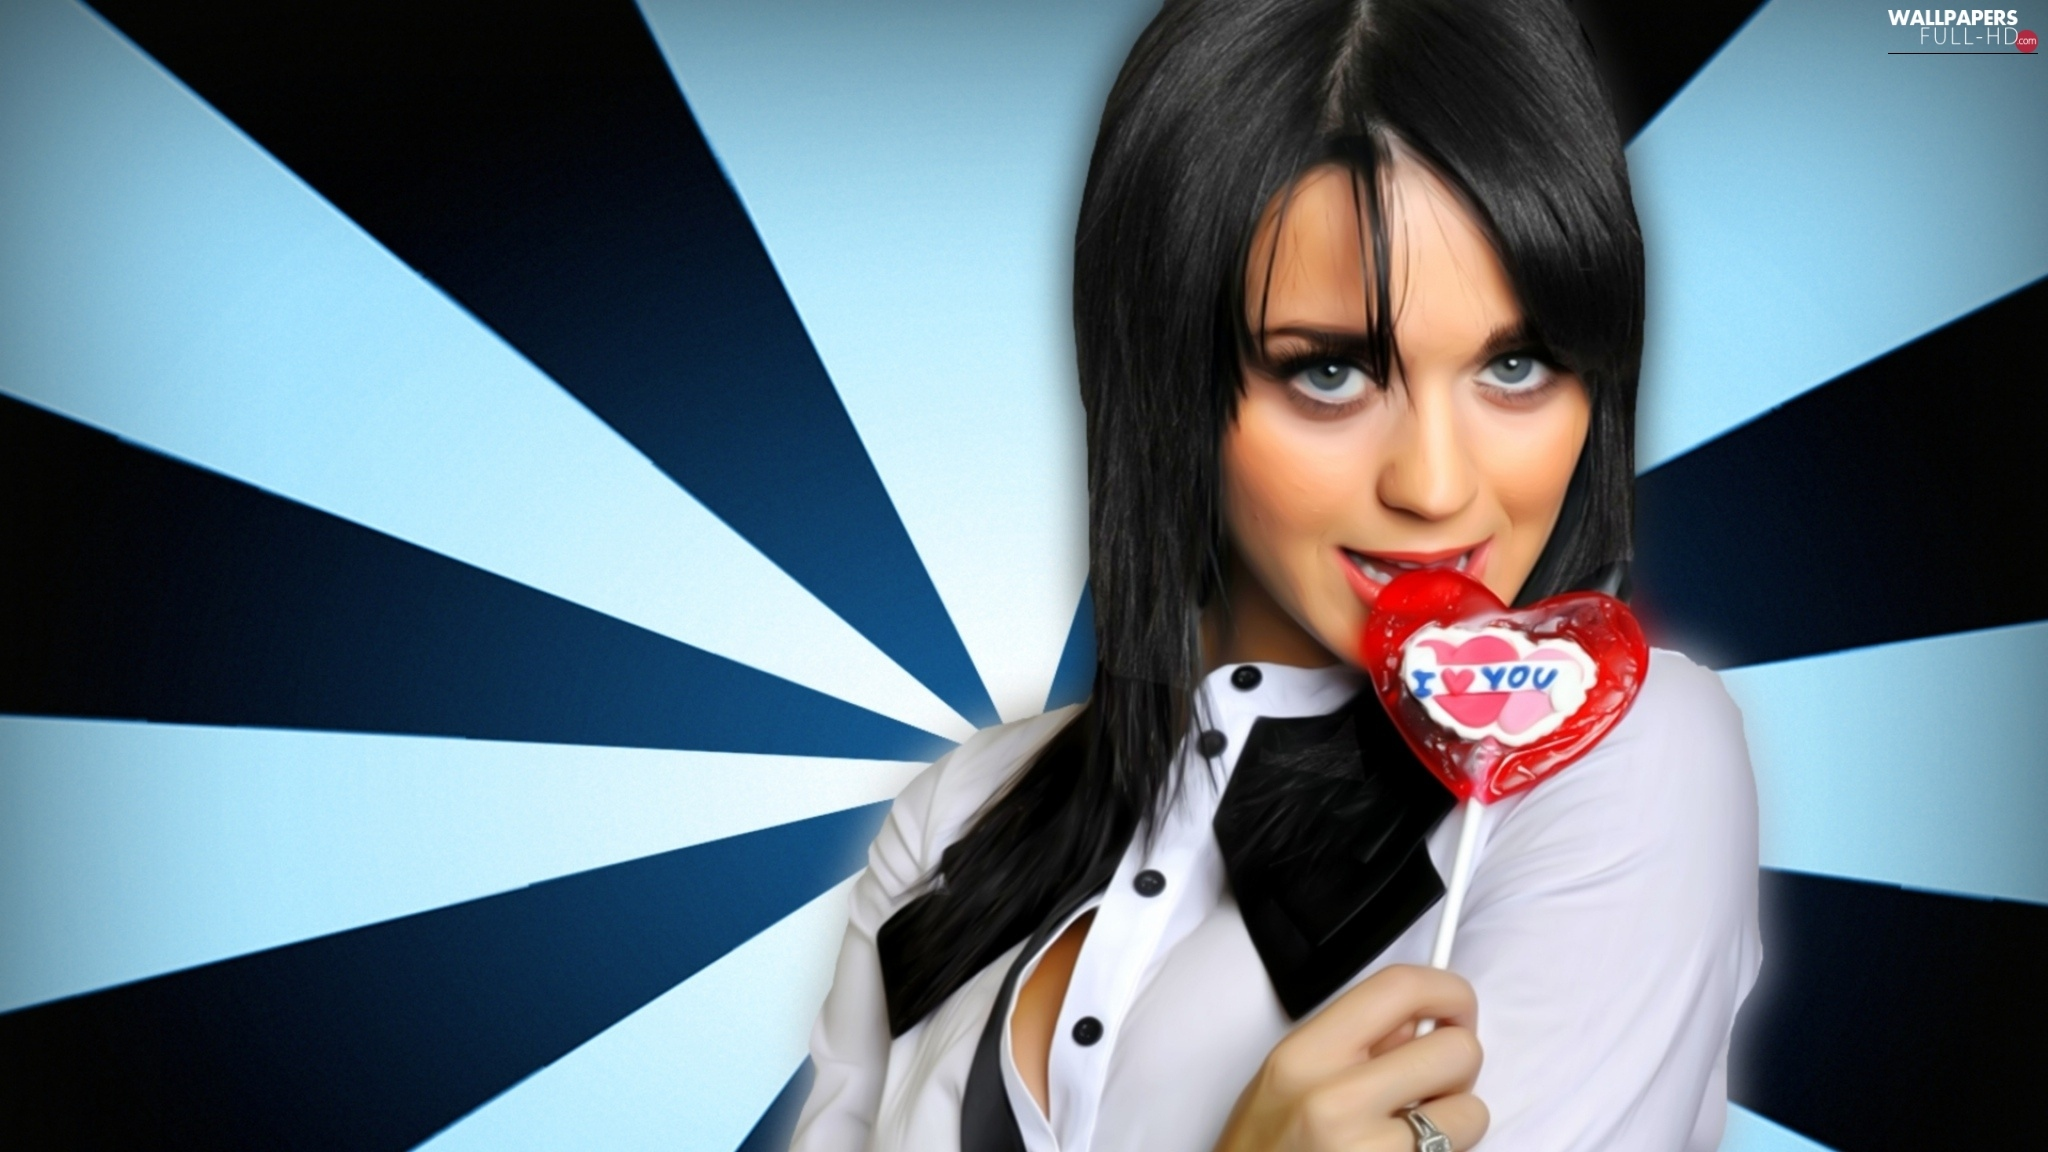 Katy Perry, Lollipop, Women